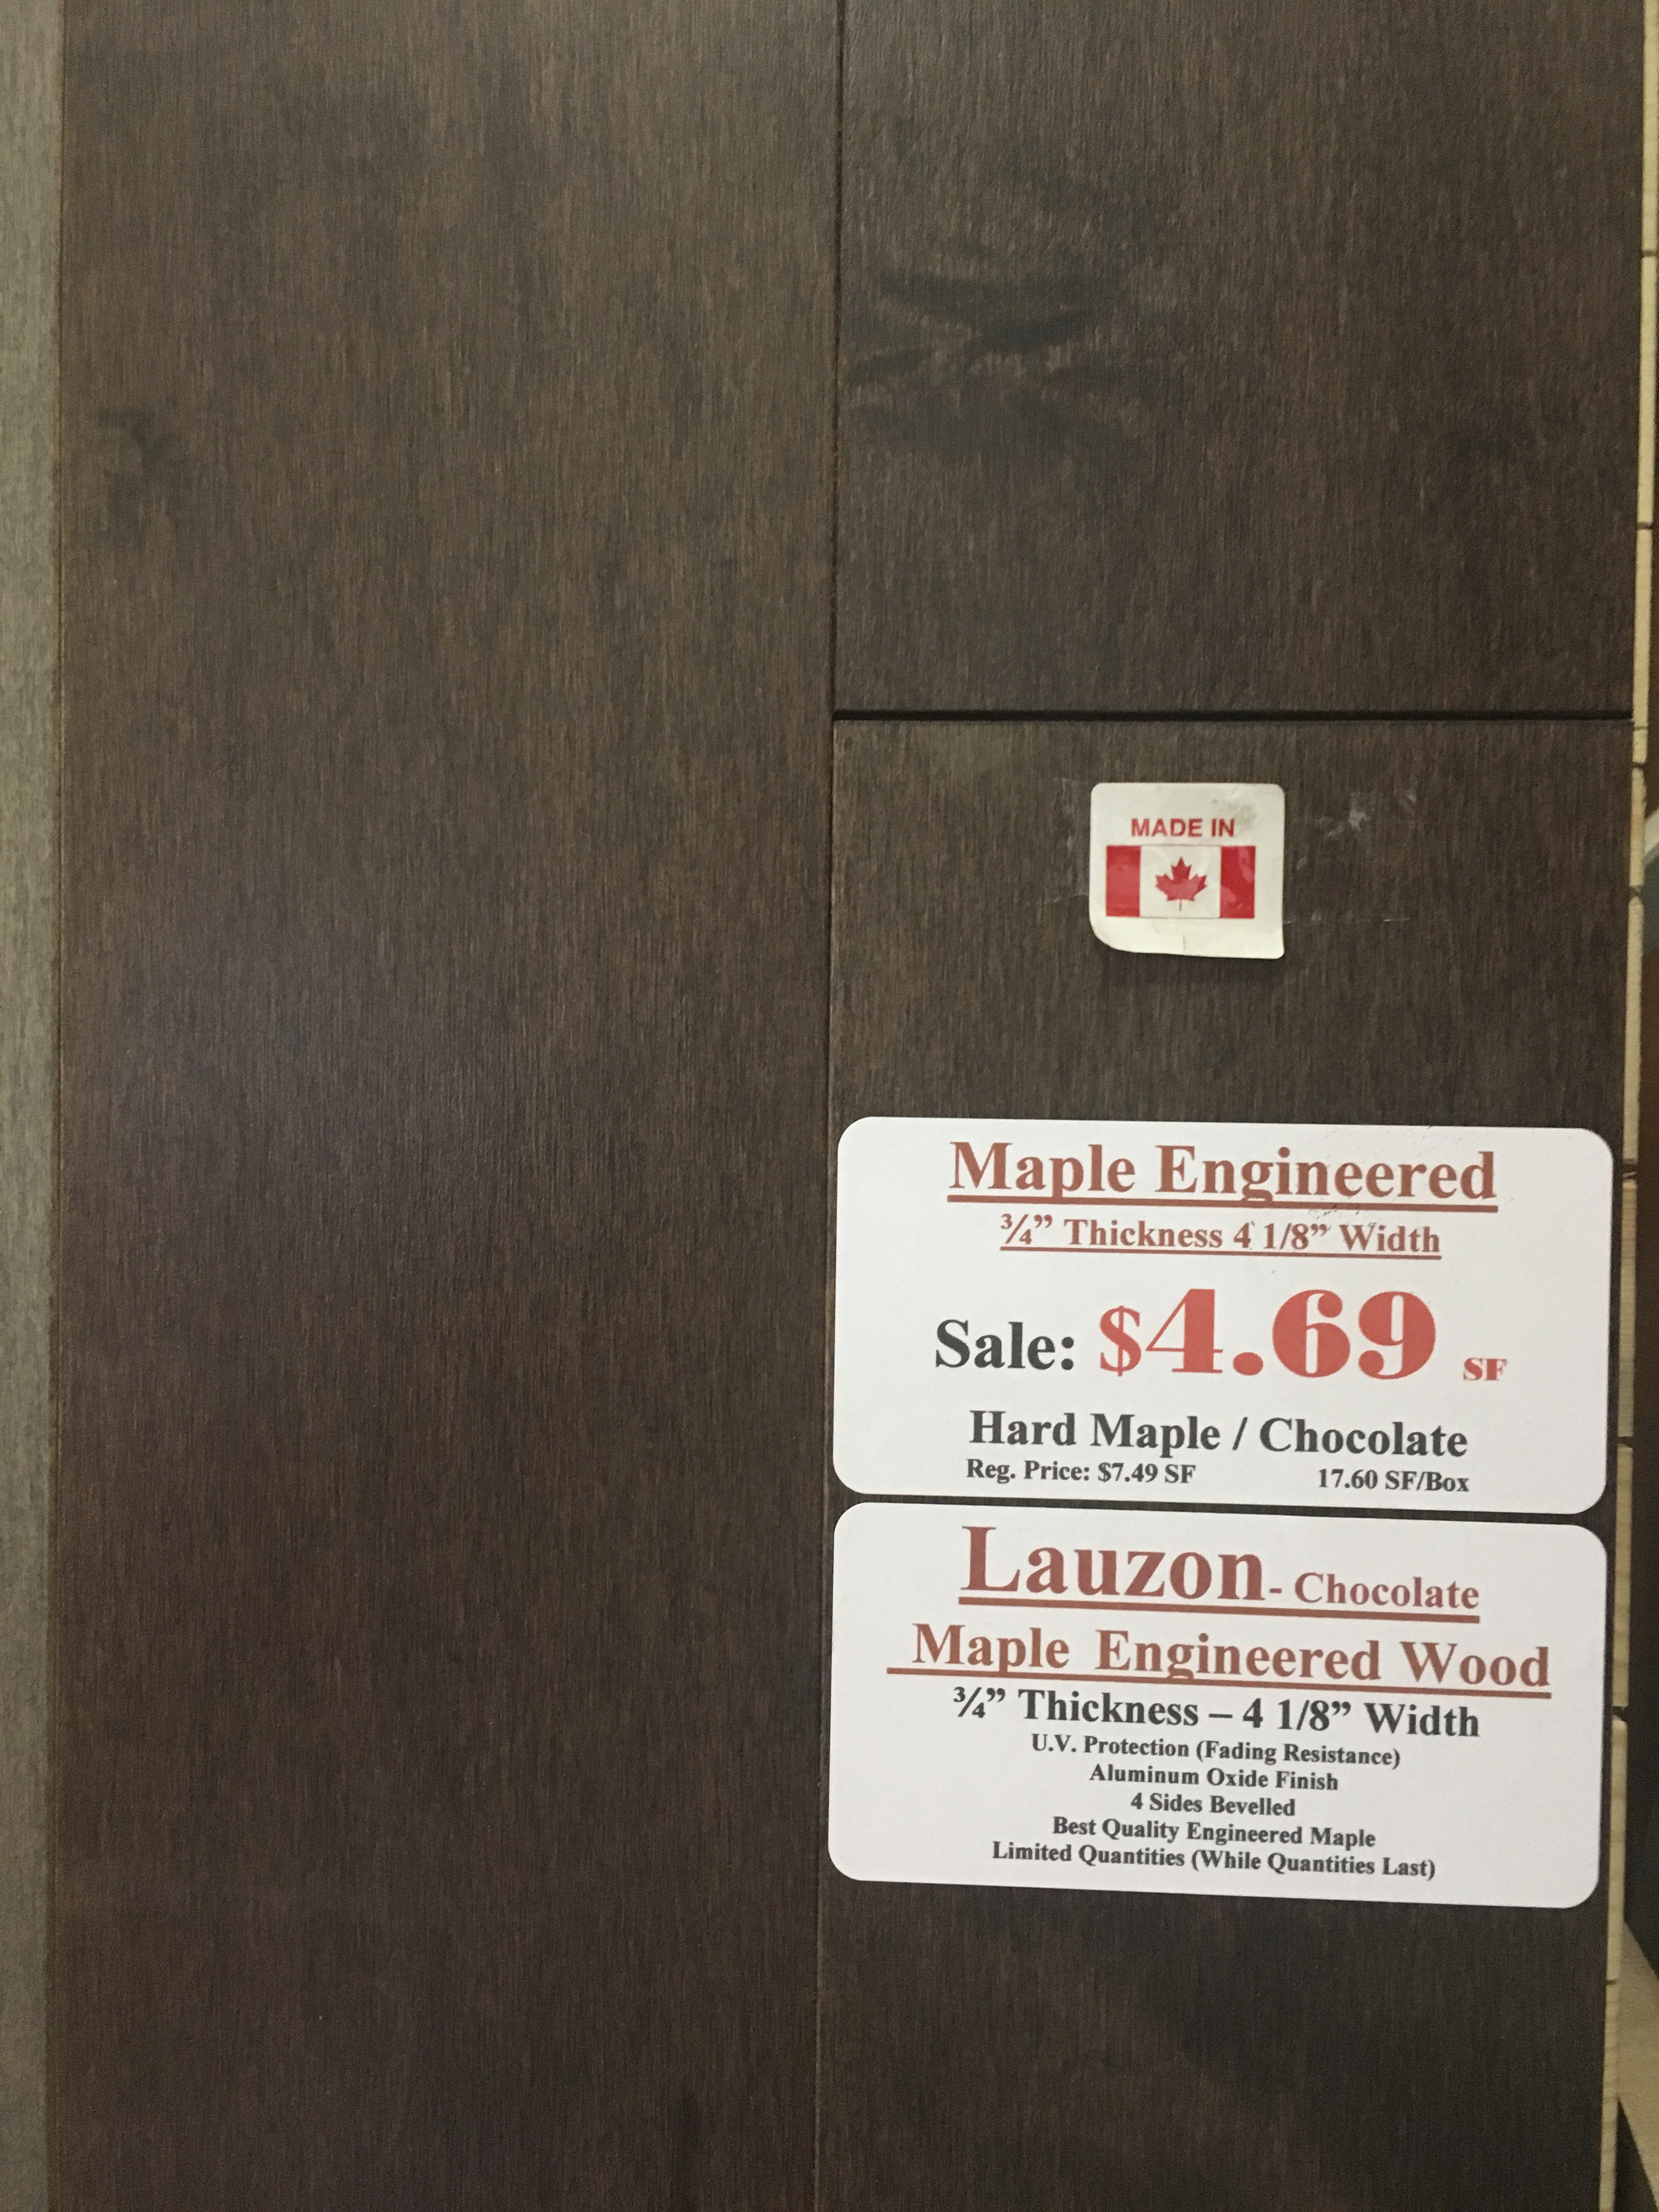 34 Thickness Engineered Canadian Hard Maple 4 18 Width Canada